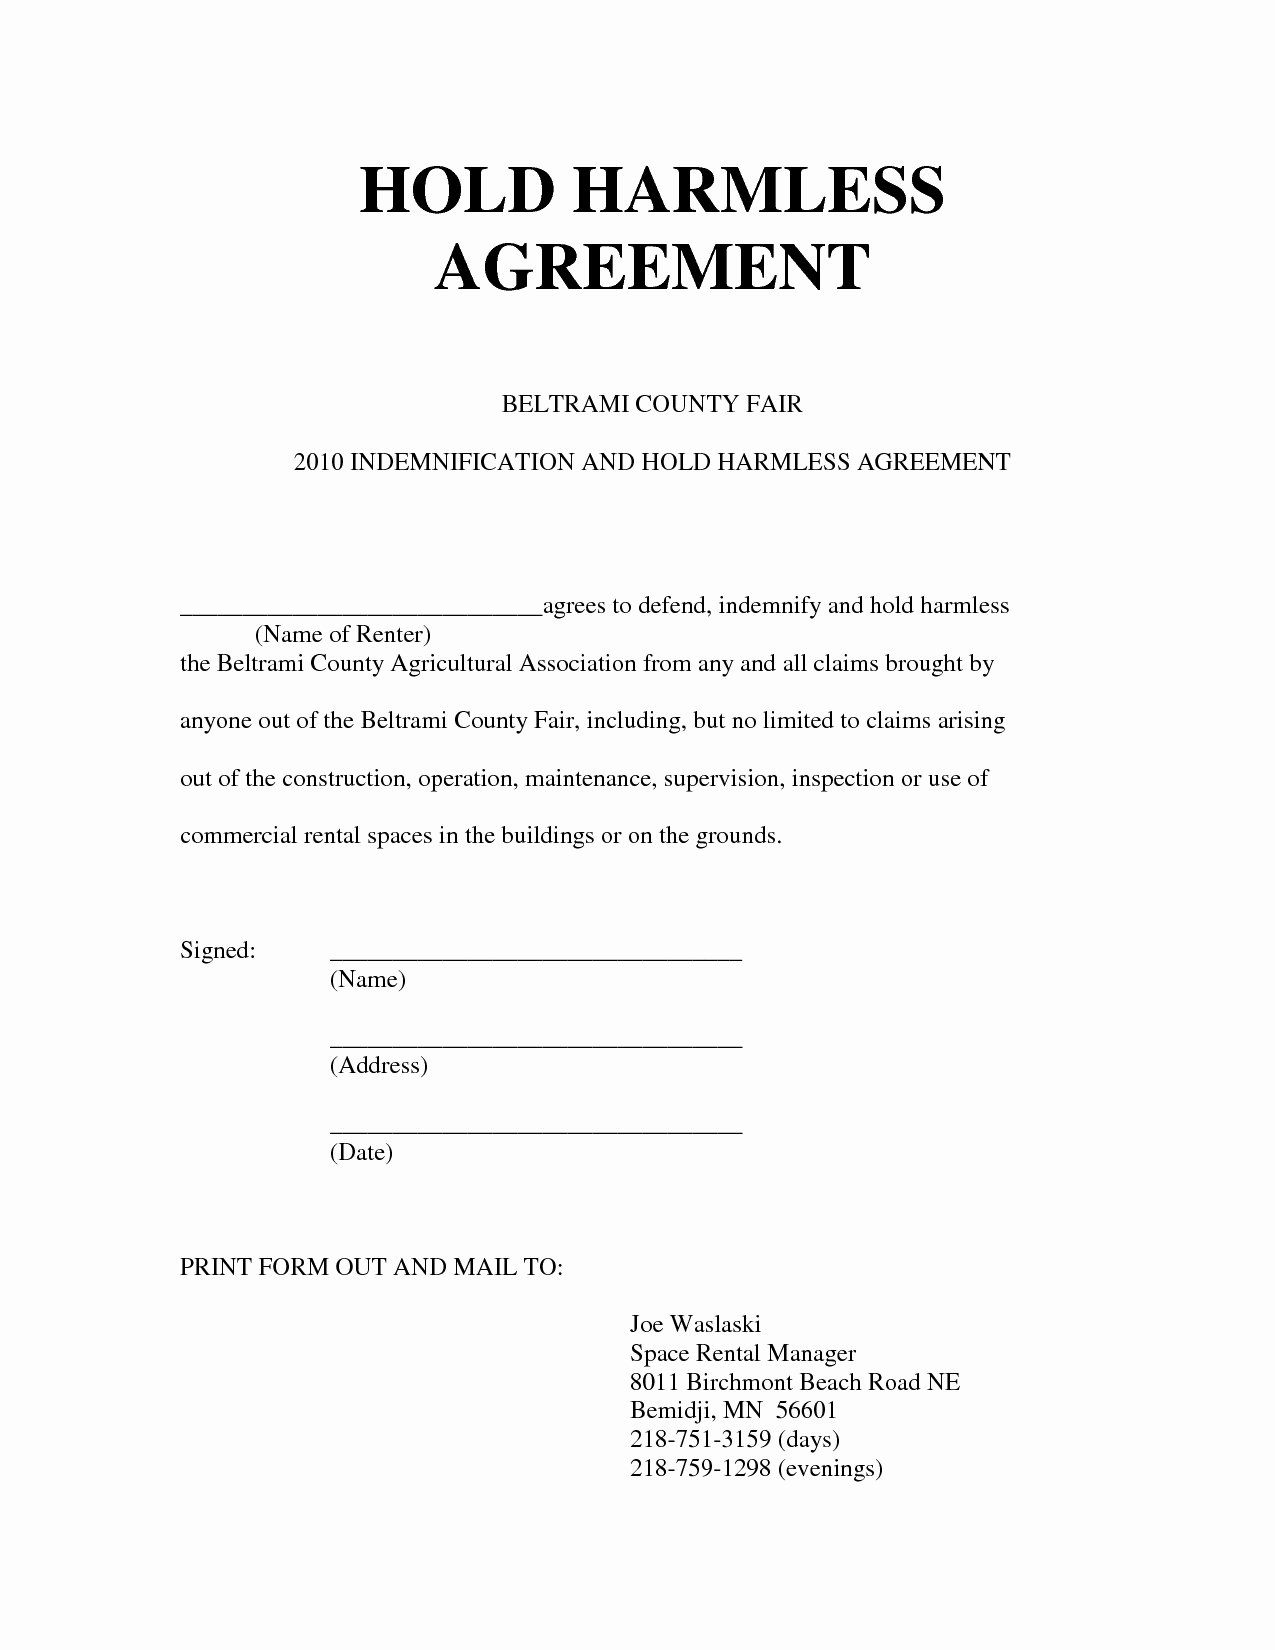 Simple Hold Harmless Agreement Awesome Release and Hold Harmless Agreement form Advanced Hold